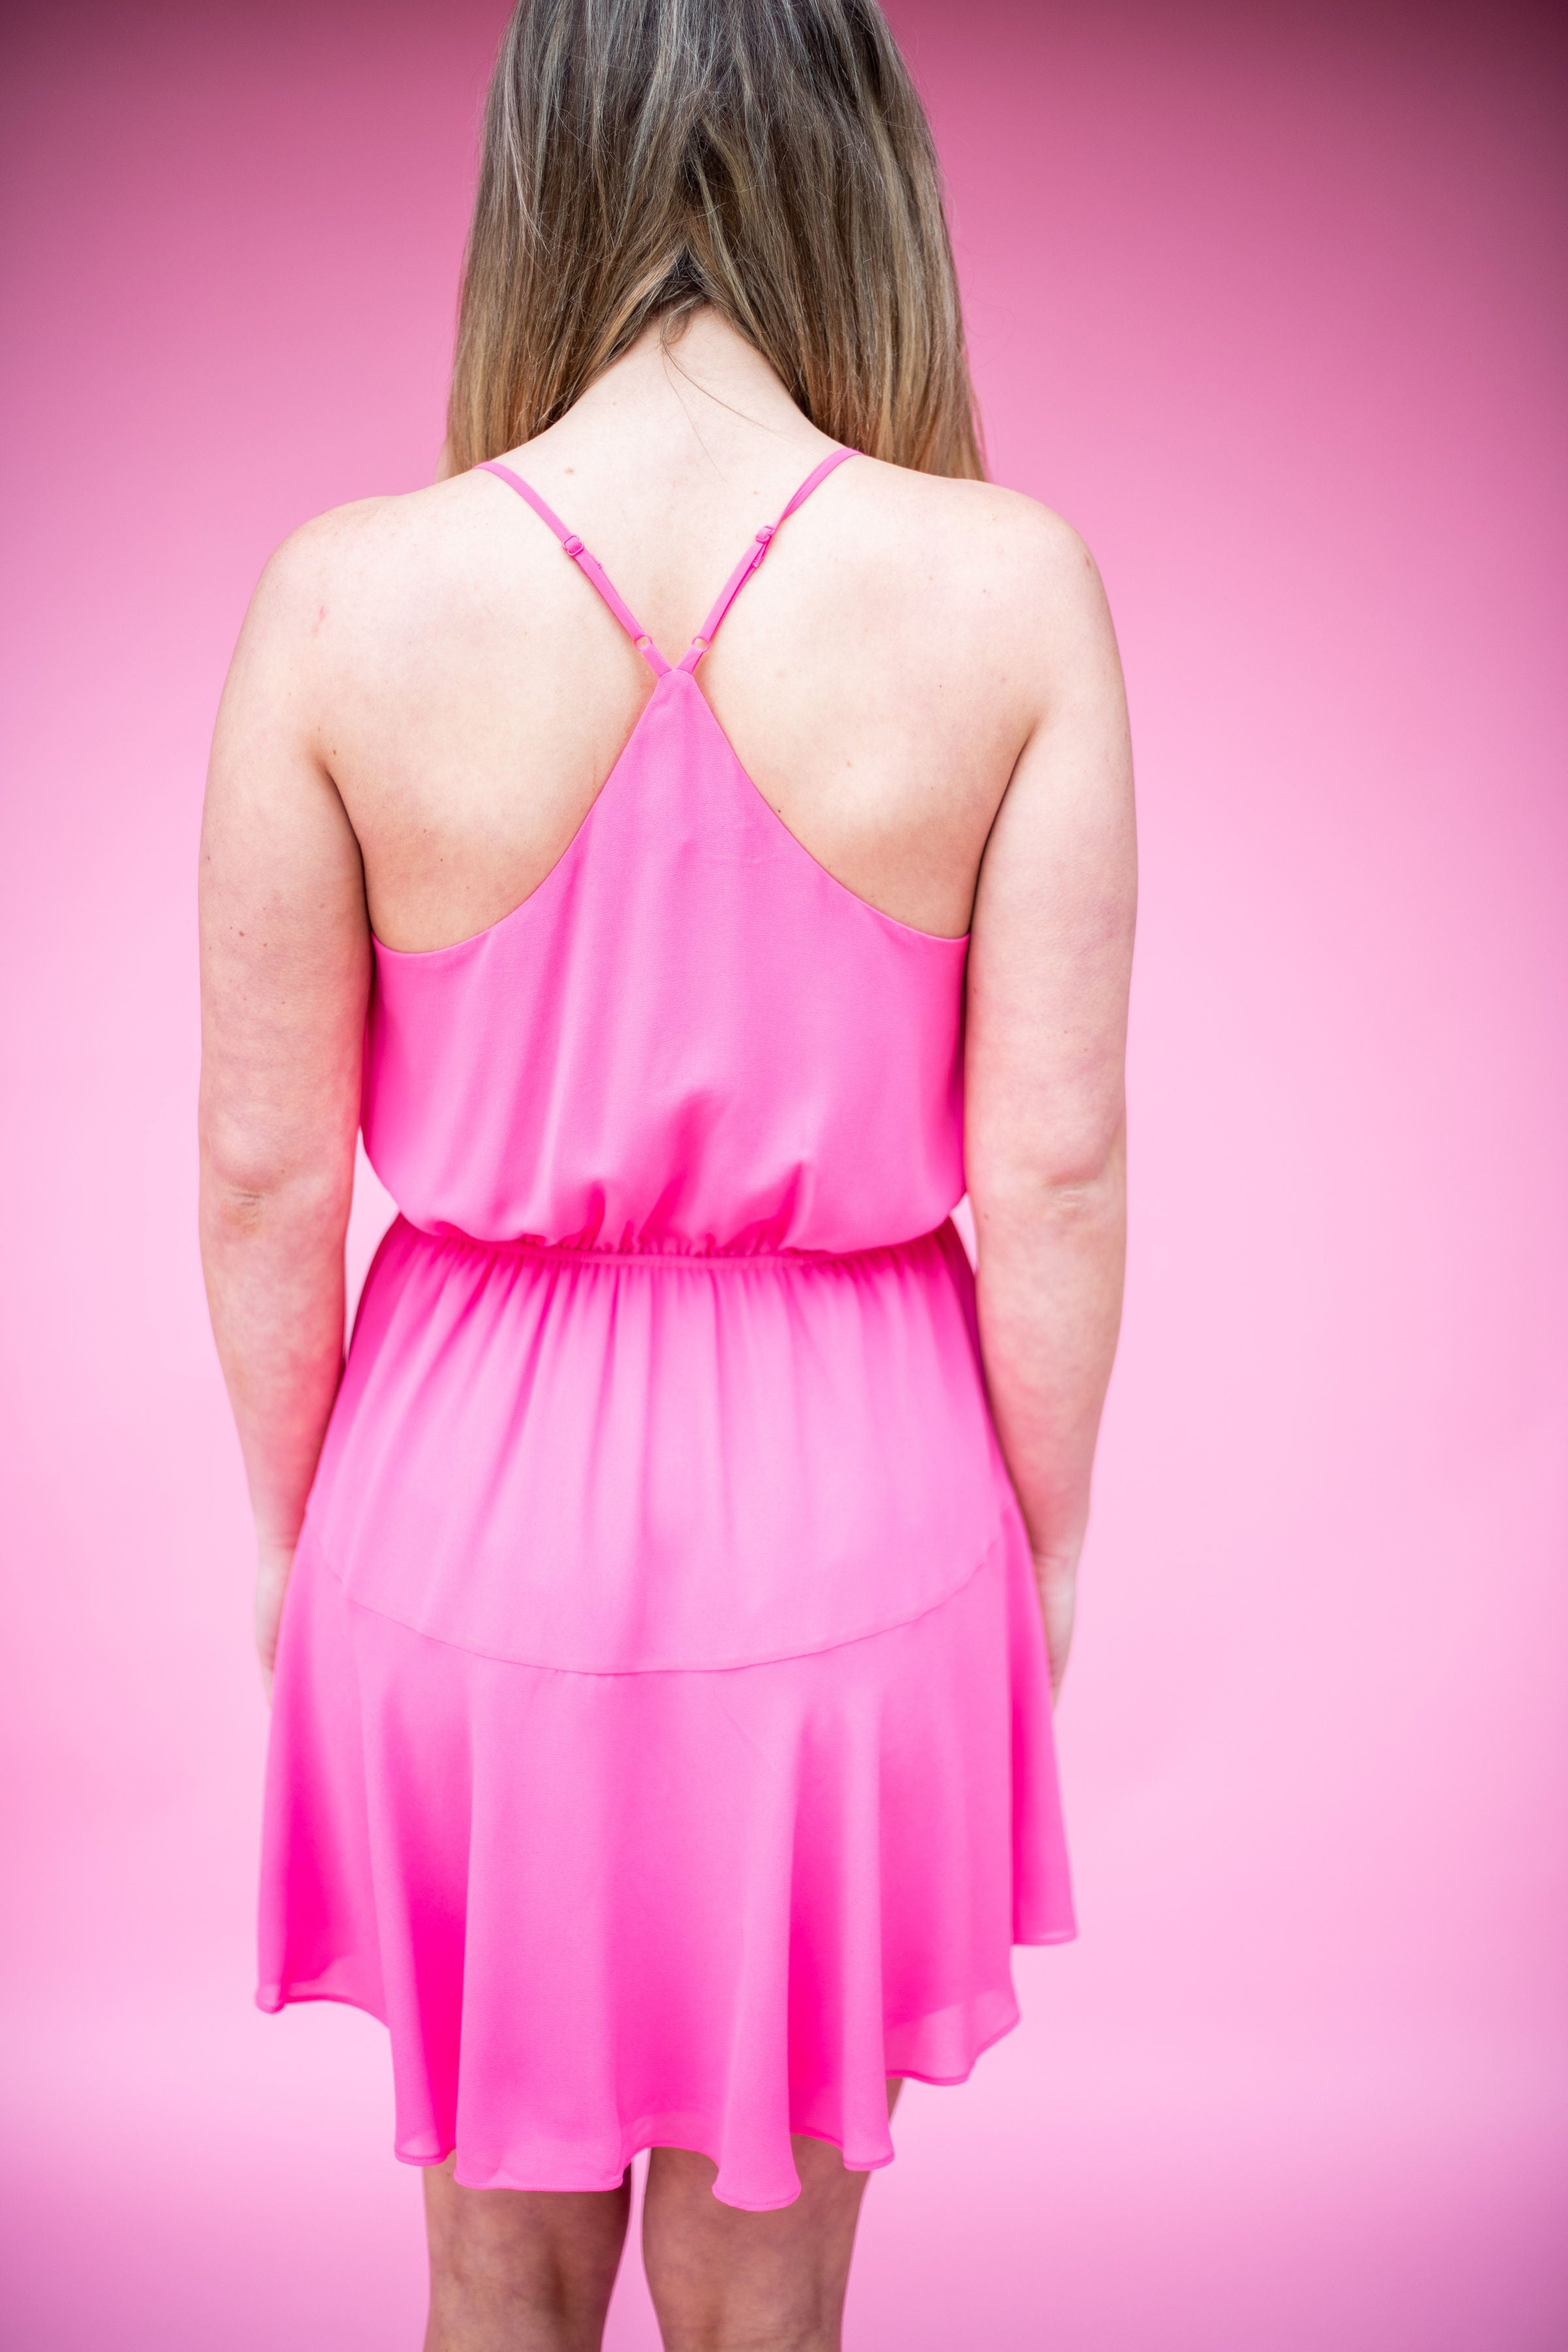 Tickled Pink Racerback Dress with Elastic Waist:  Pink